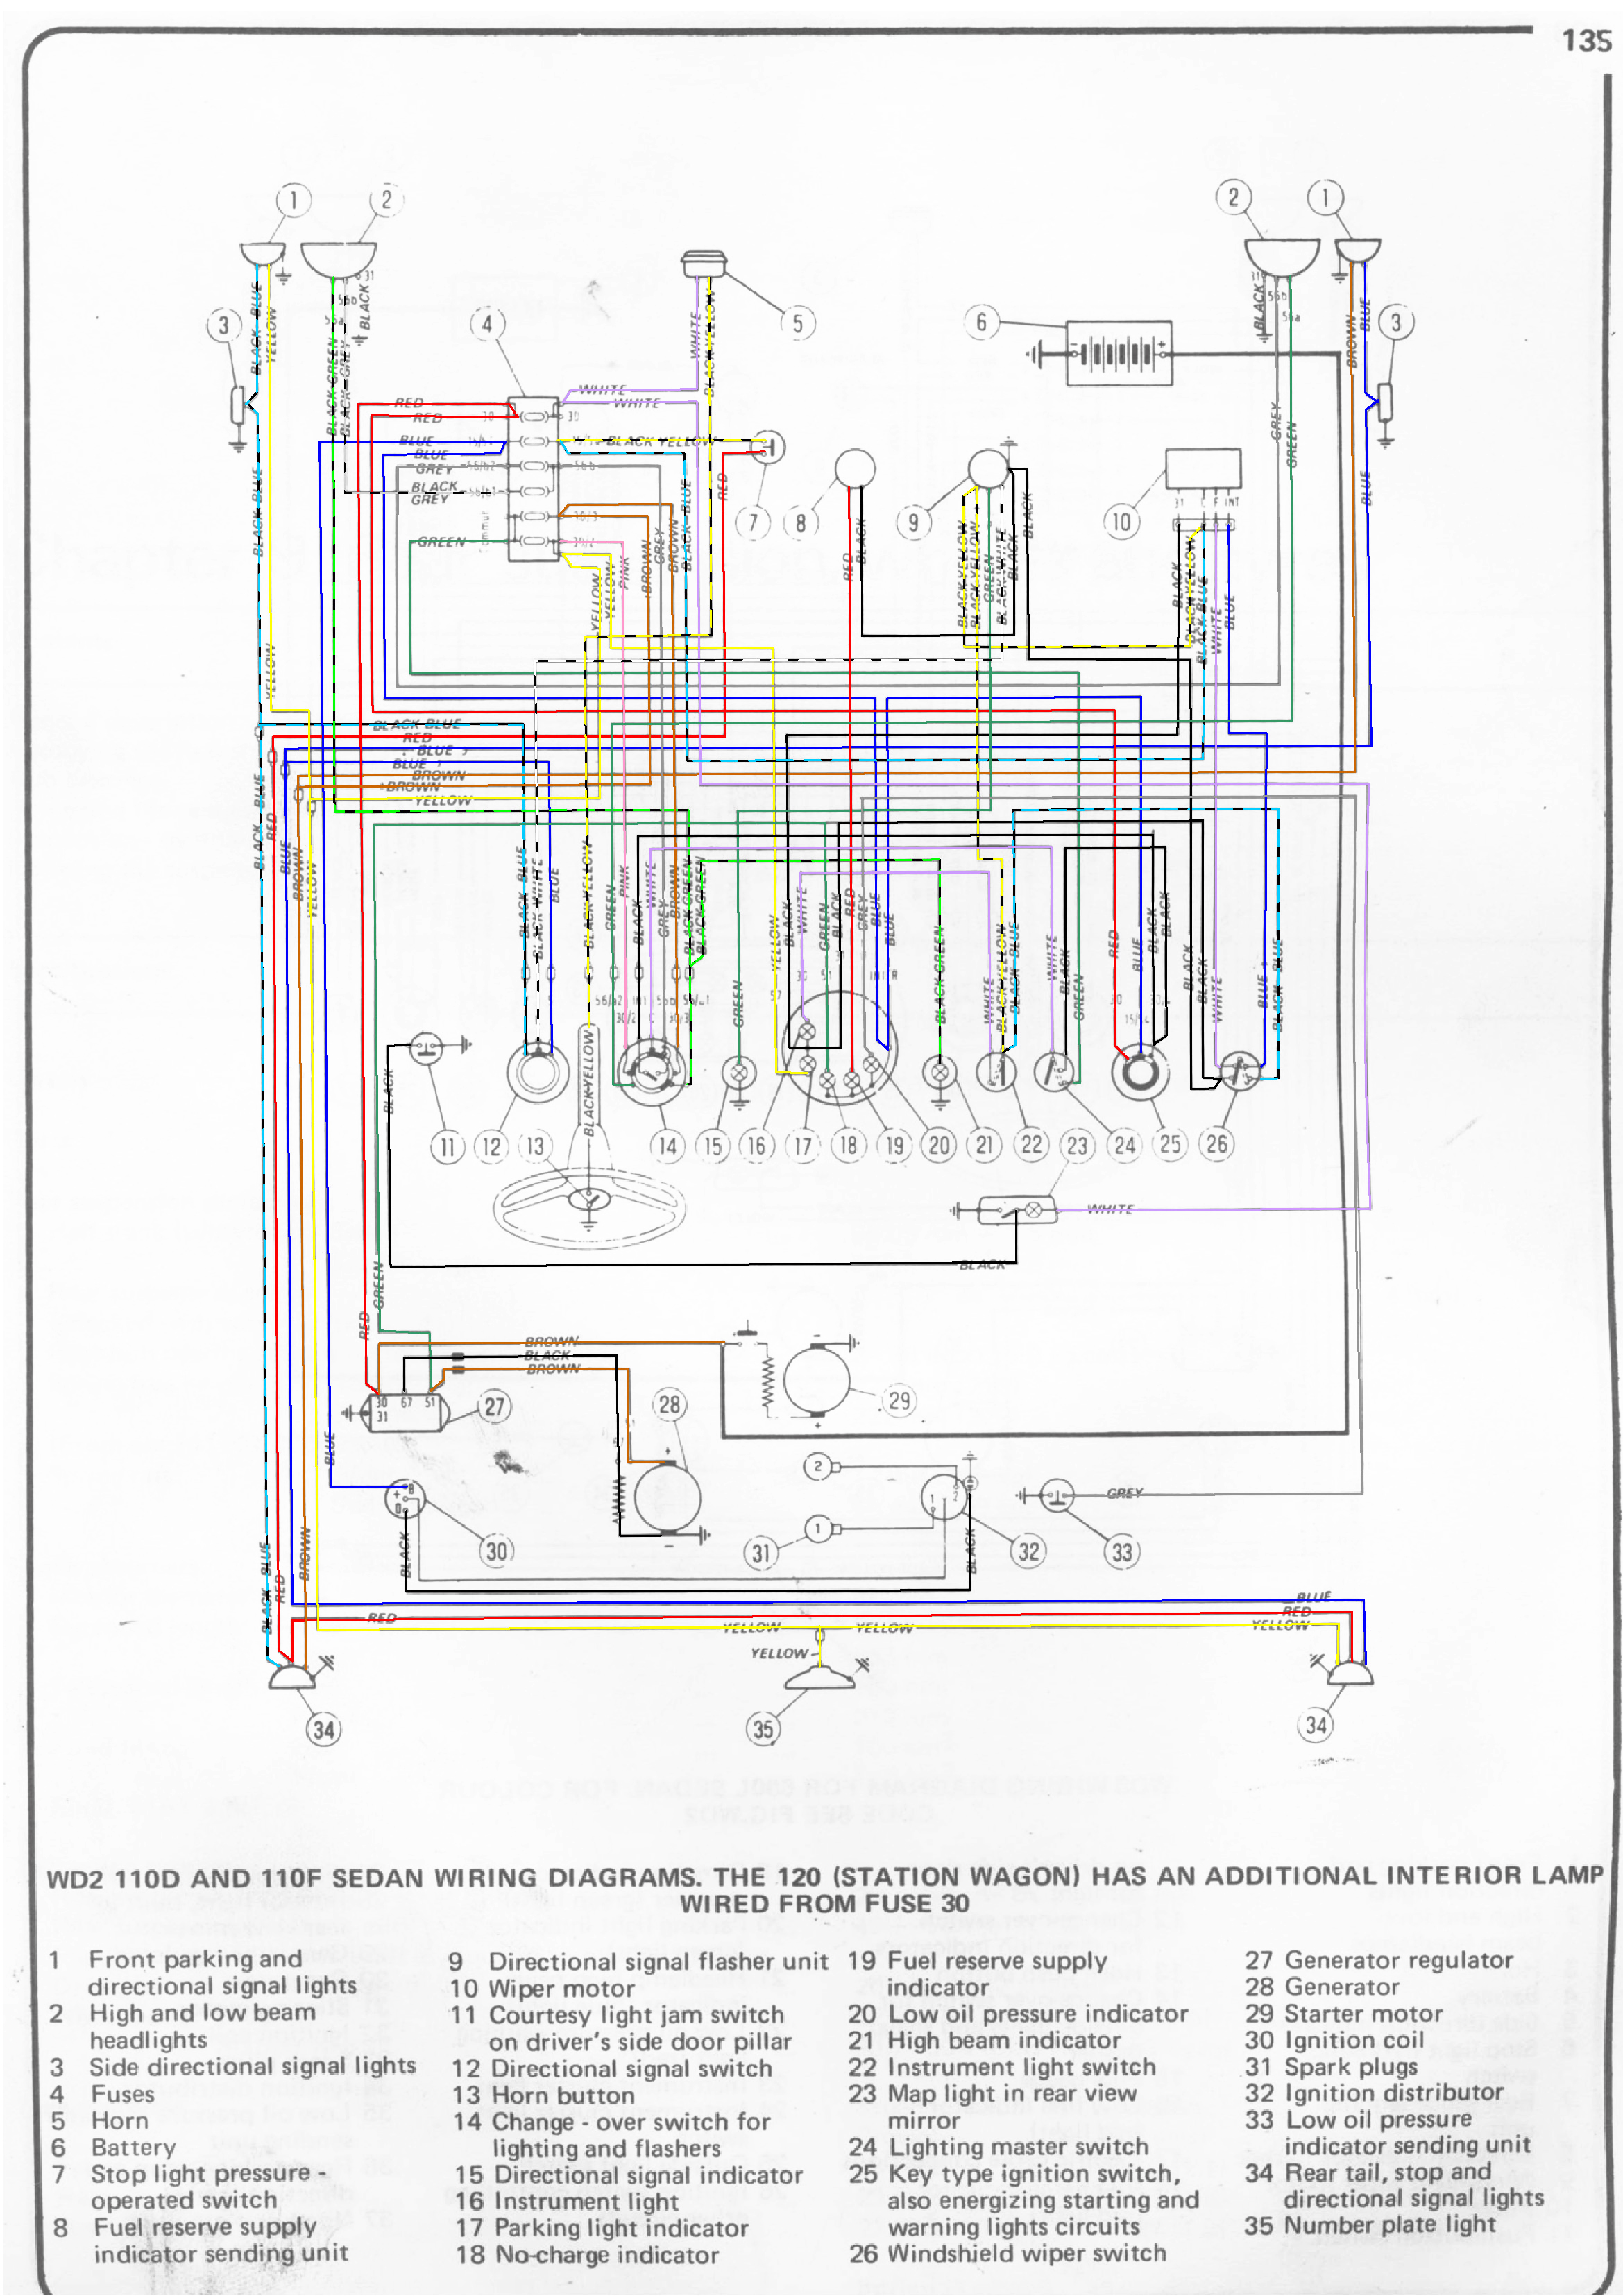 fiat engine wiring diagram residential electrical symbols u2022 rh bookmyad co Chevy Ignition Coil Wiring Diagram Fiat 500 Wiring Diagram 2011